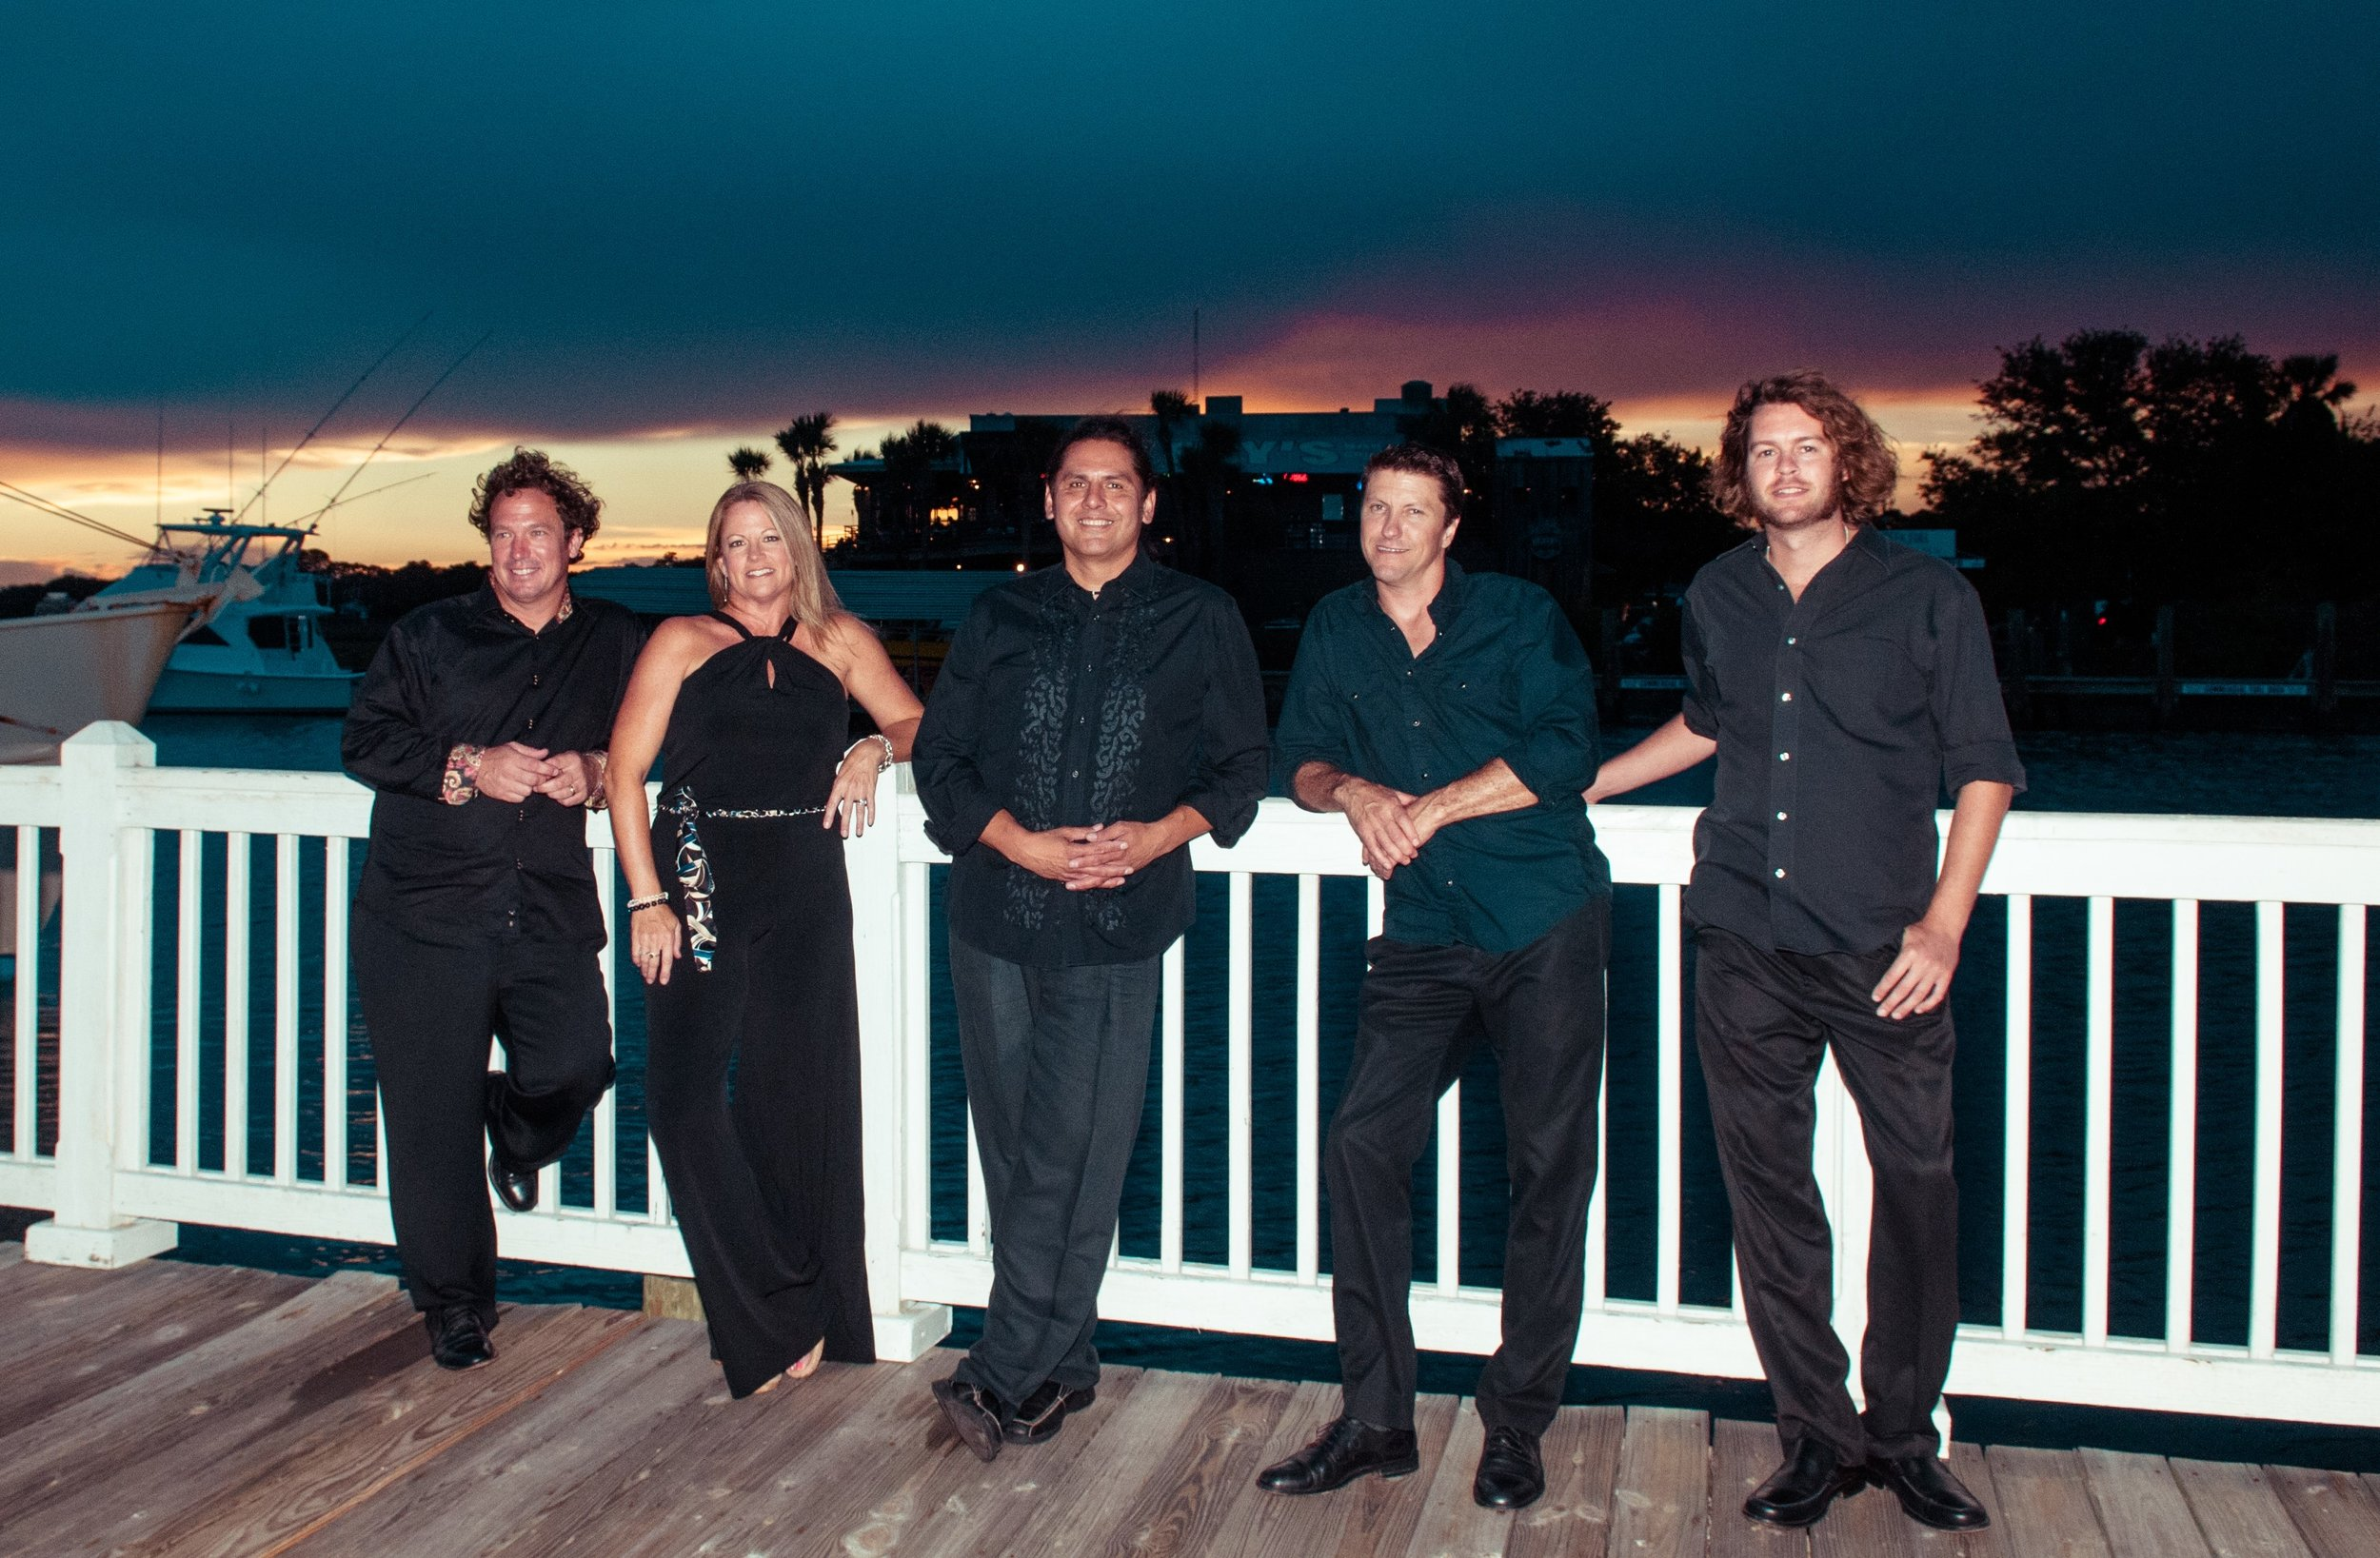 Dave Landeo + the Sol Beats